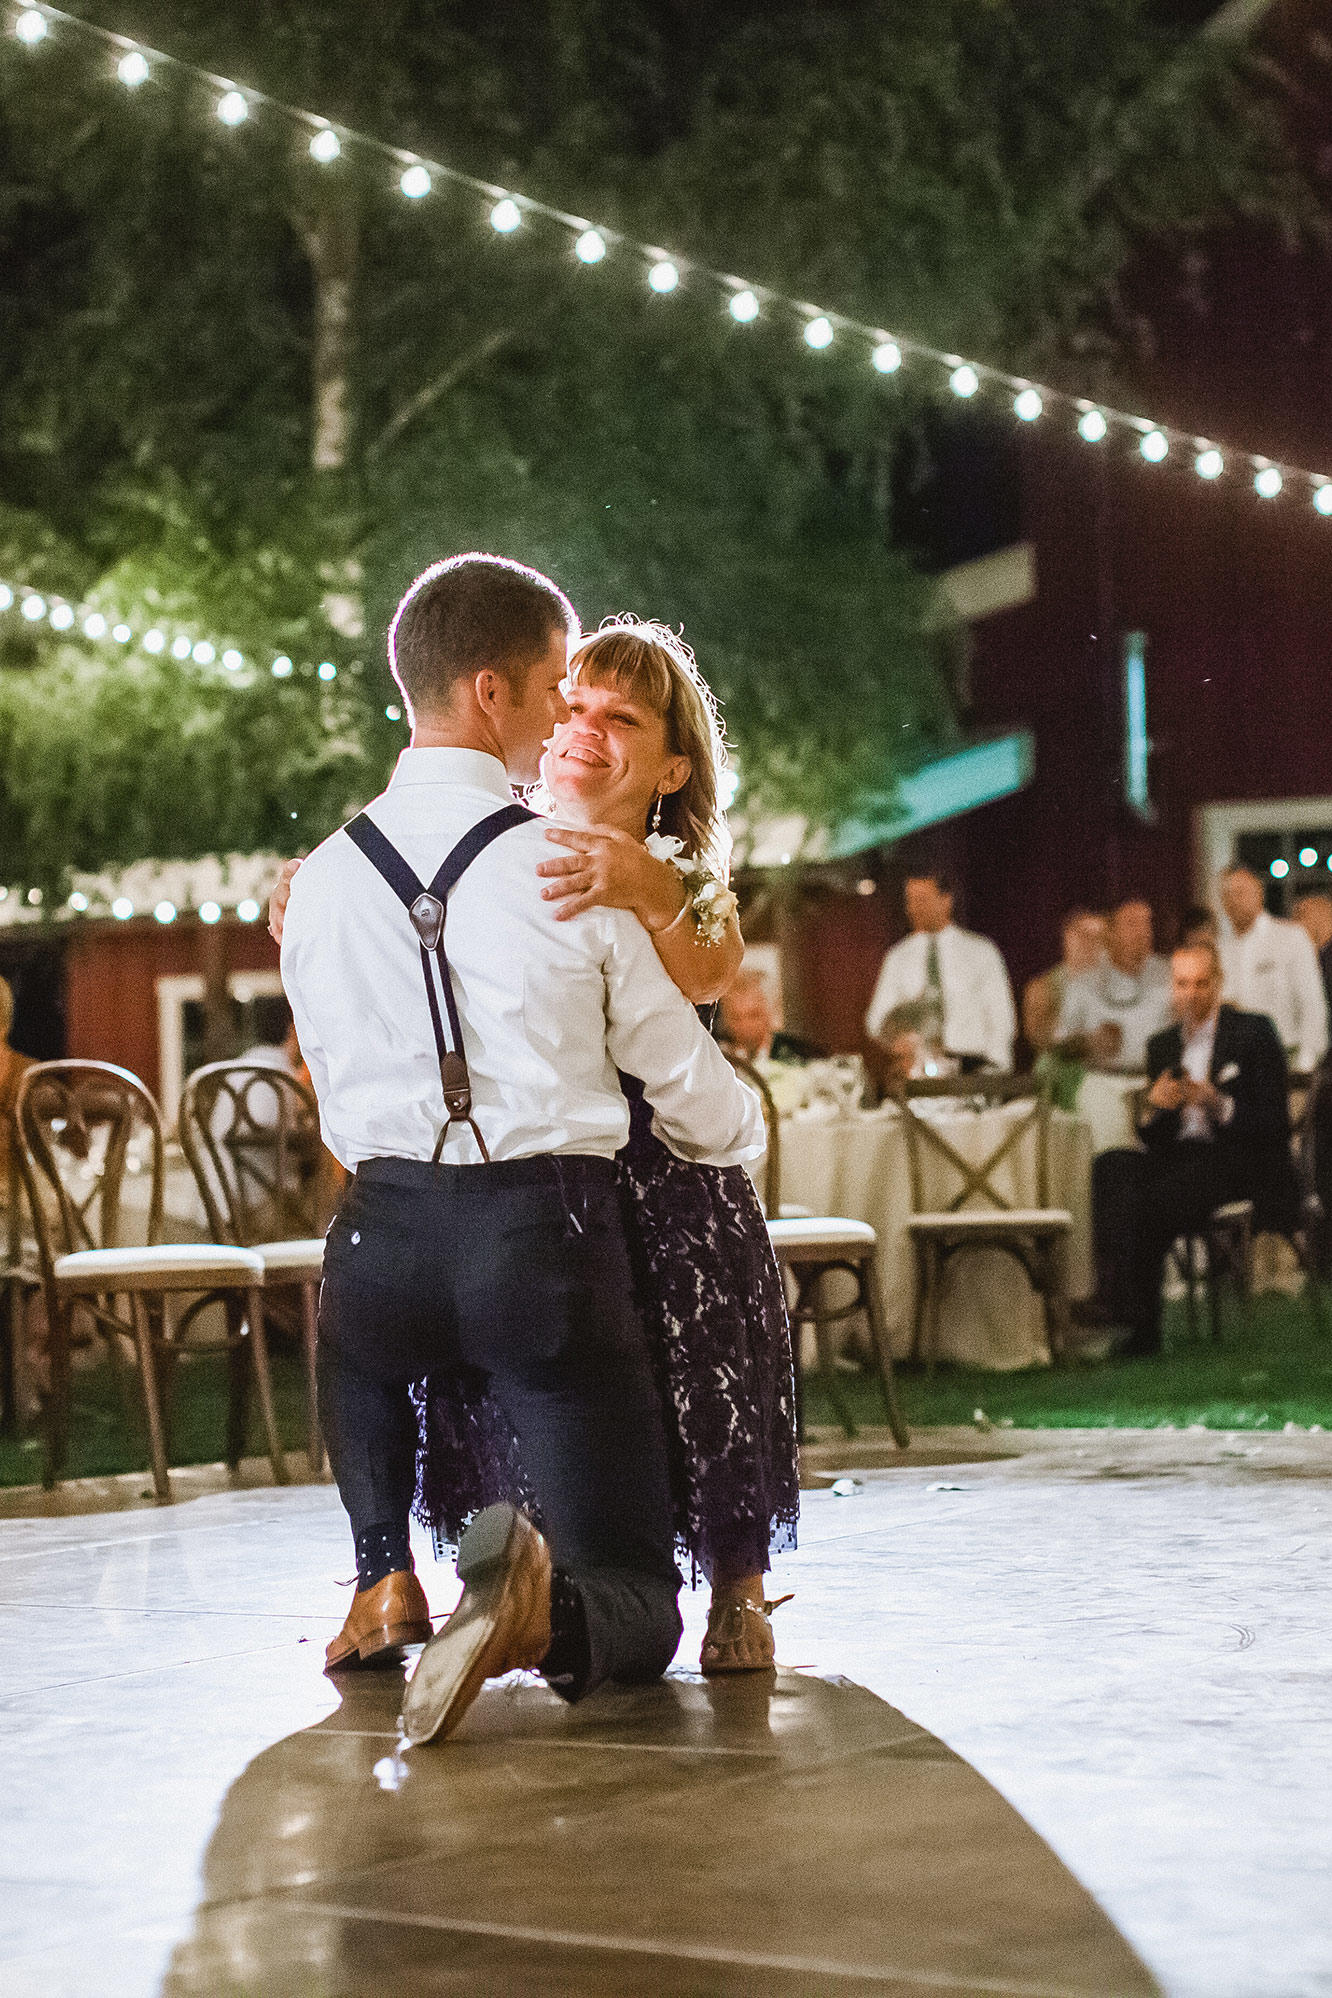 Jeremy roloff and audrey bottis wedding photos little people jeremy shares a dance with his mother junglespirit Gallery